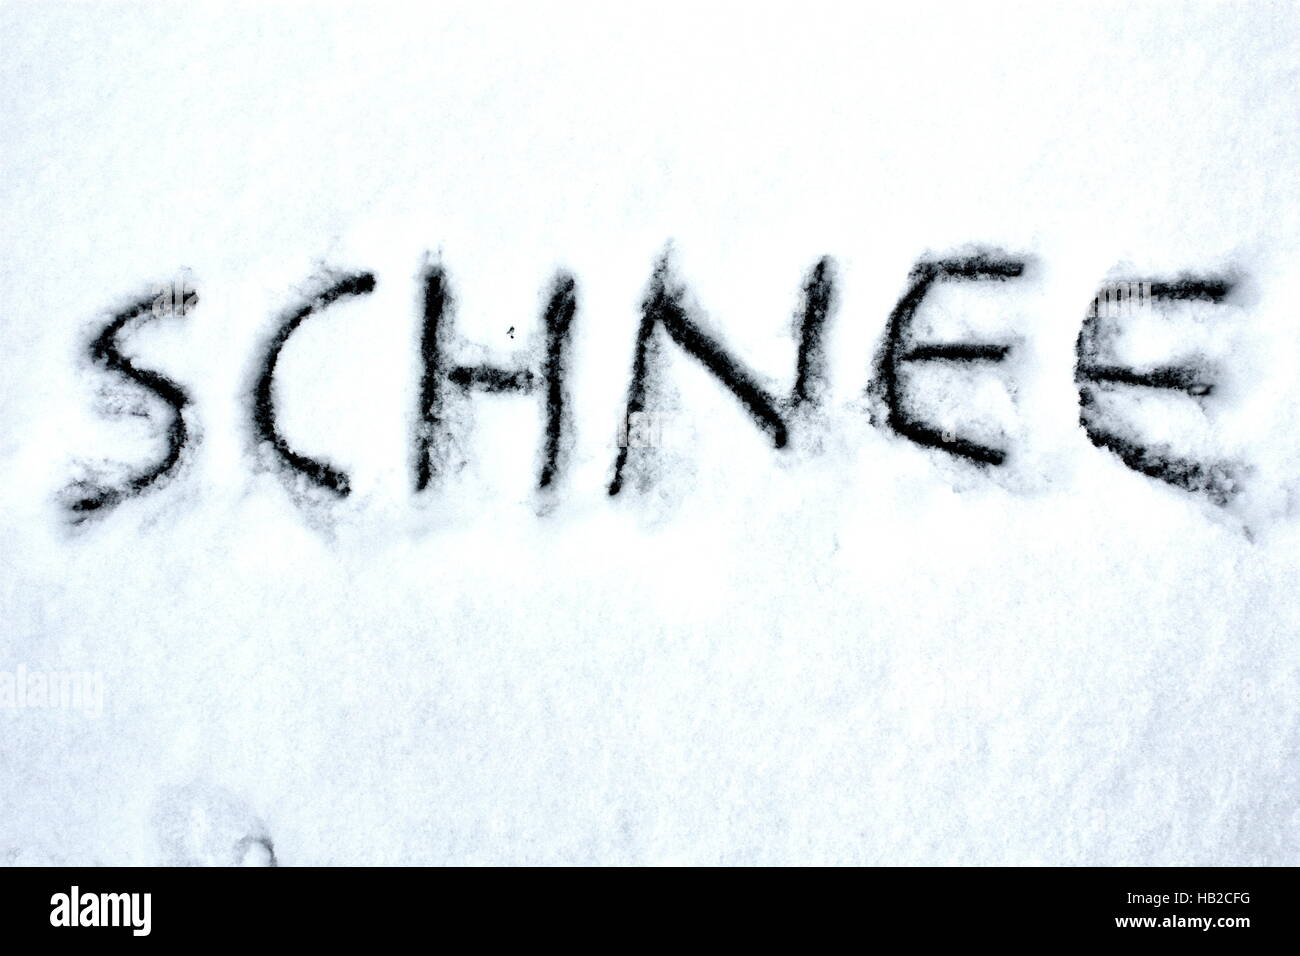 written in snow - Stock Image